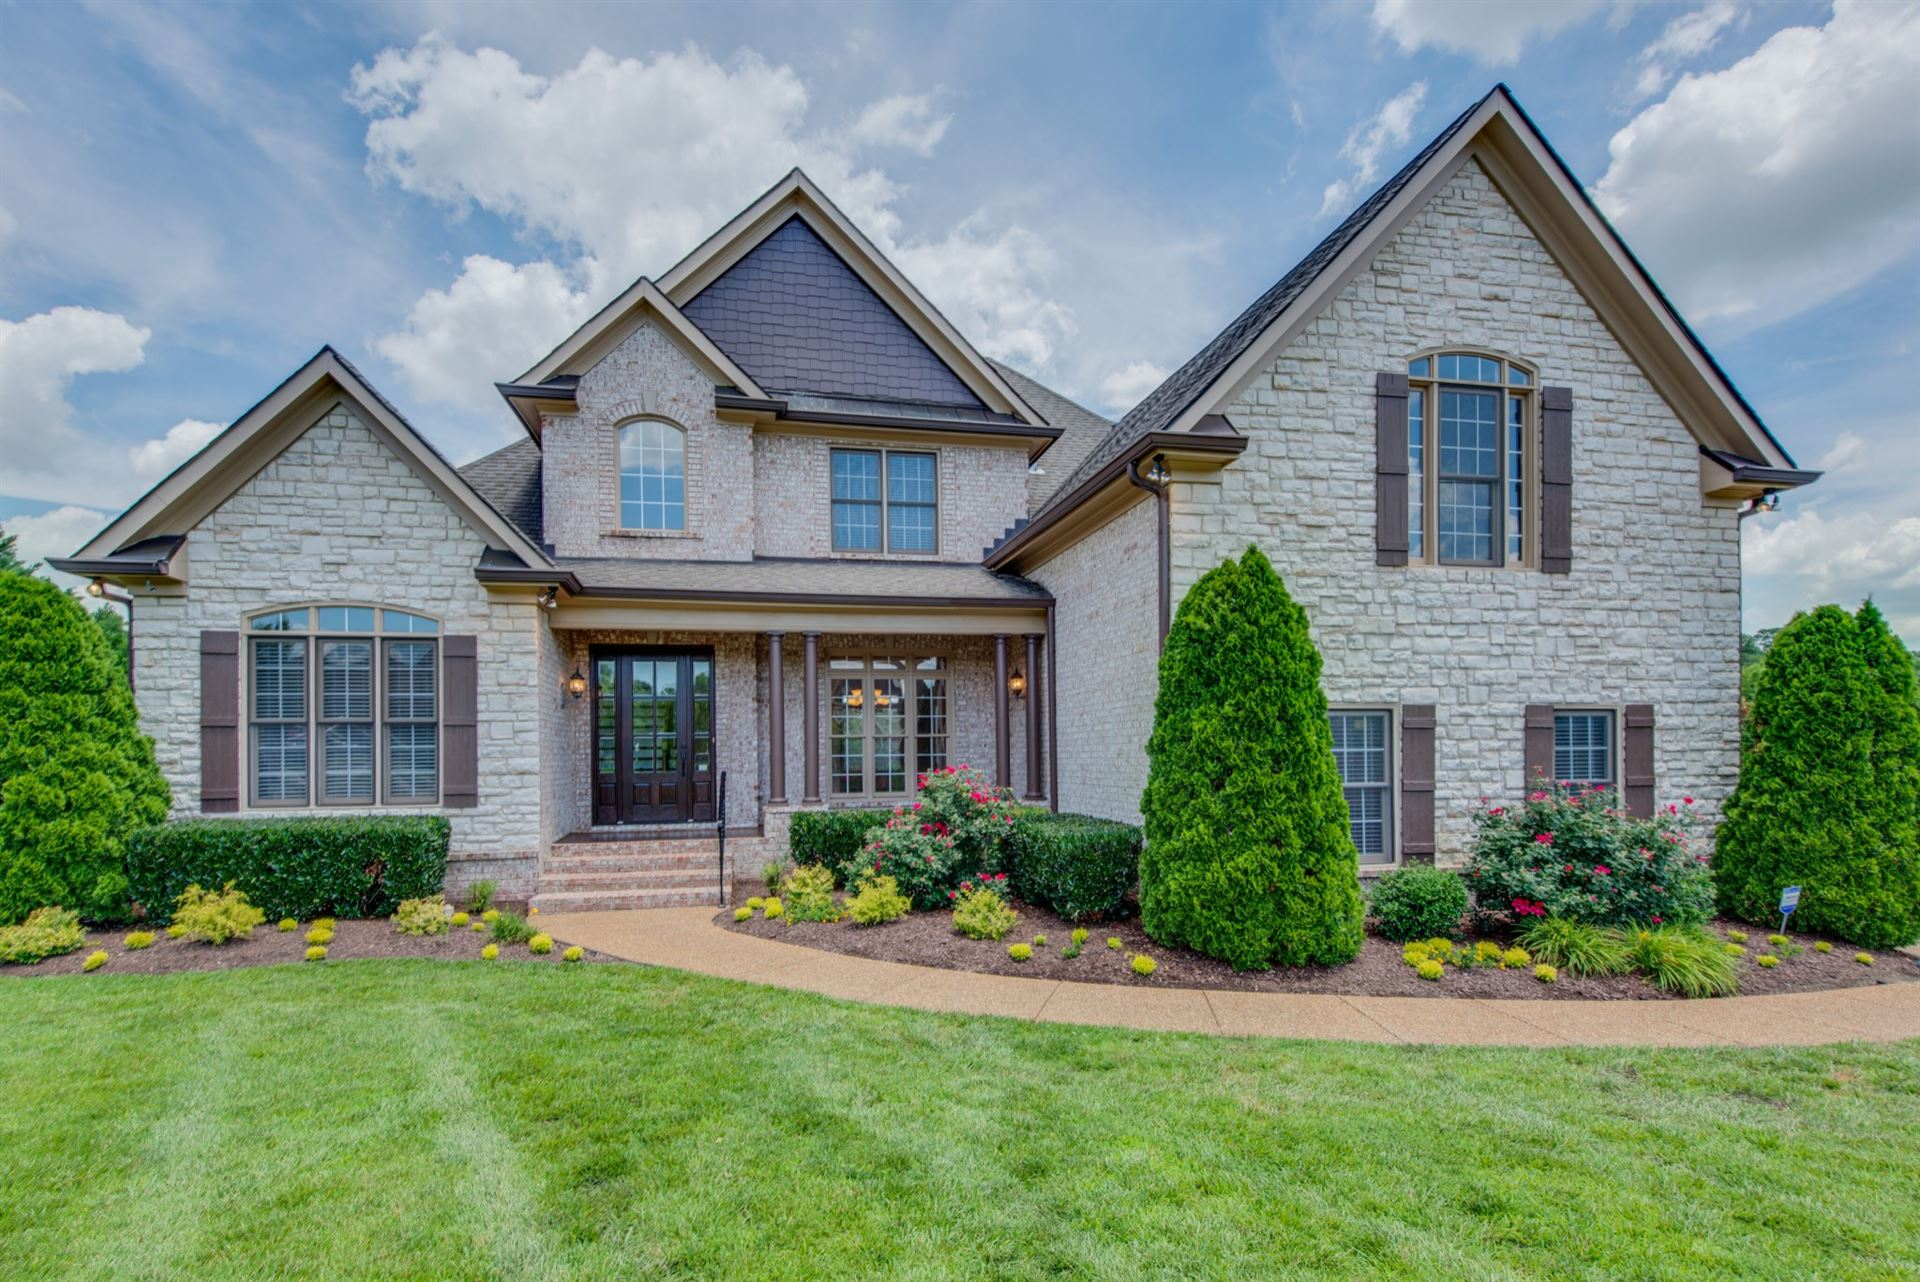 Photo of 1604 Kendale Ct, Brentwood, TN 37027 (MLS # 2164725)